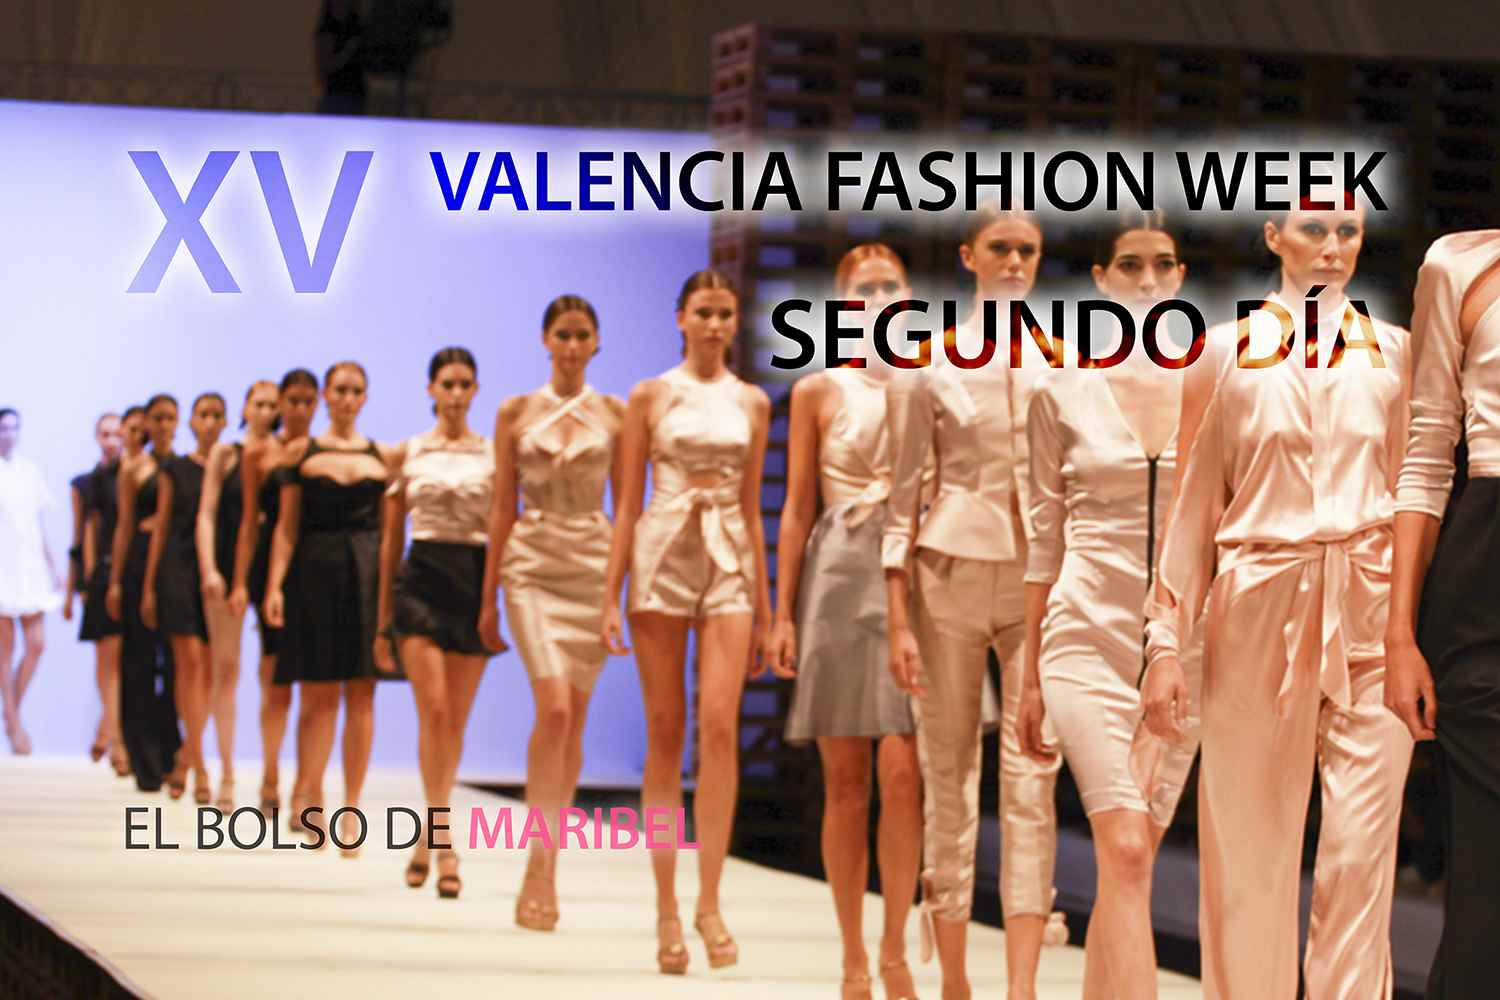 XV Valencia Fashion Week VFW Segundo dia viernes 20